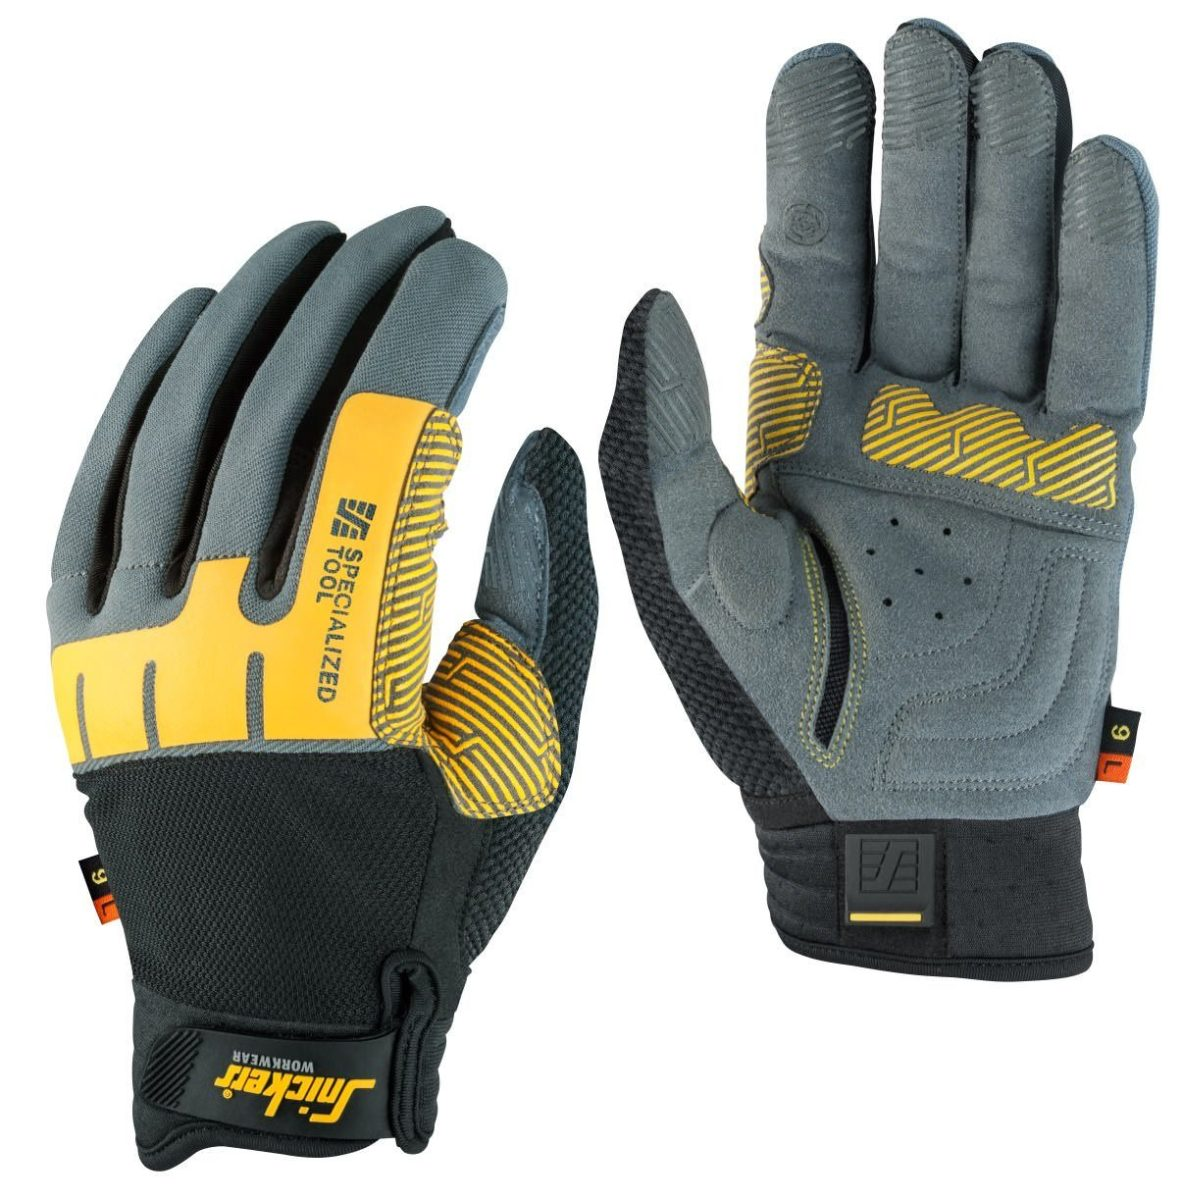 Snickers 9597 Specialised Tool Glove, Left (Single)